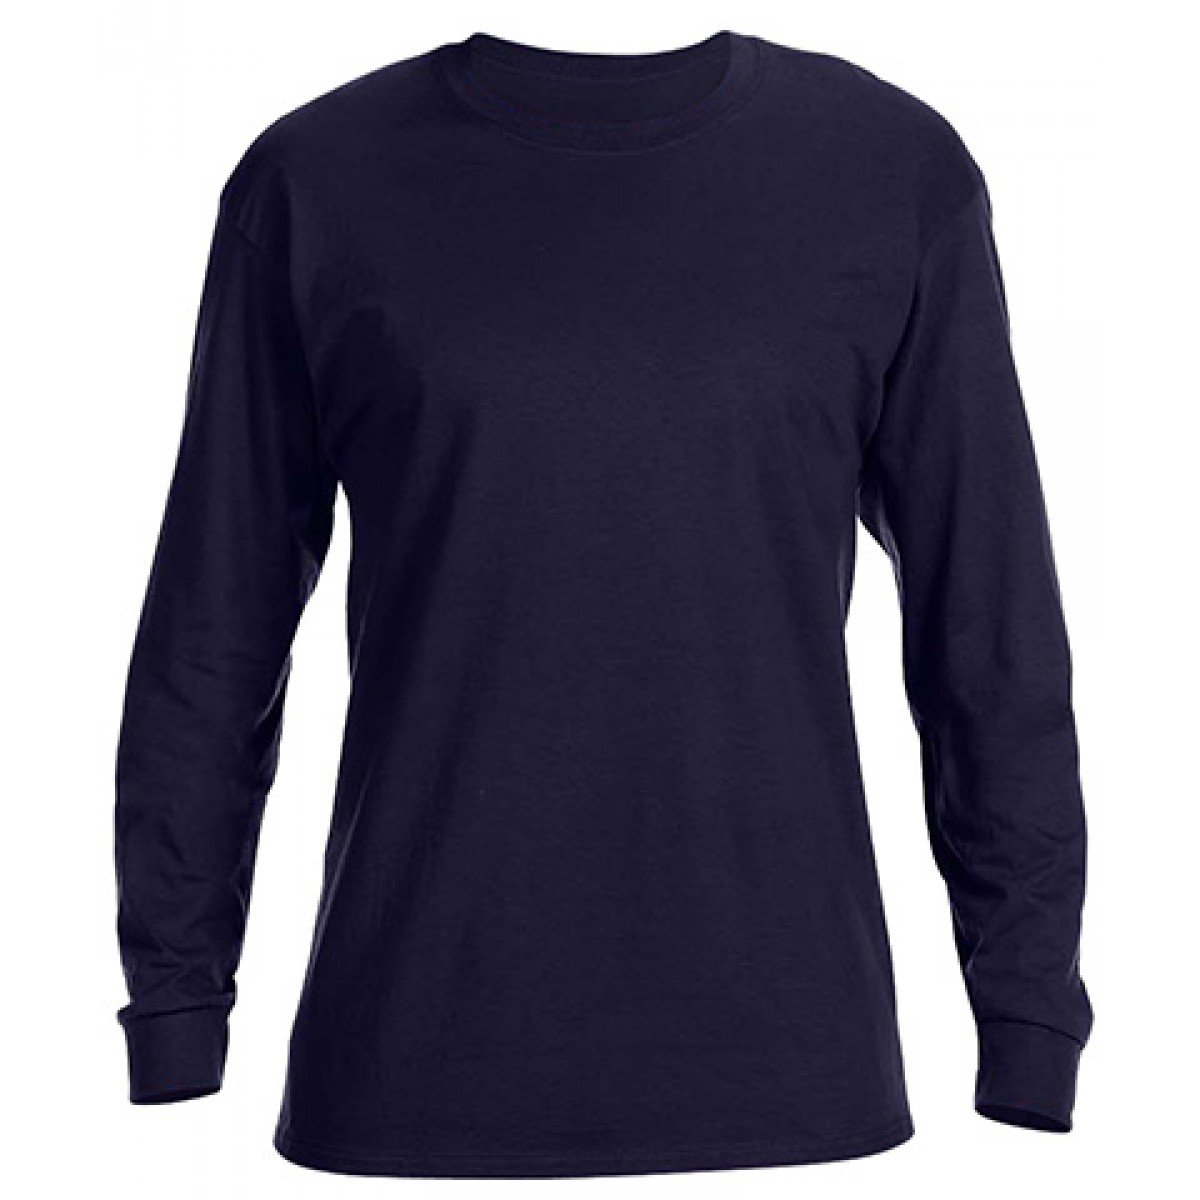 Basic Long Sleeve Crew Neck -Navy-L